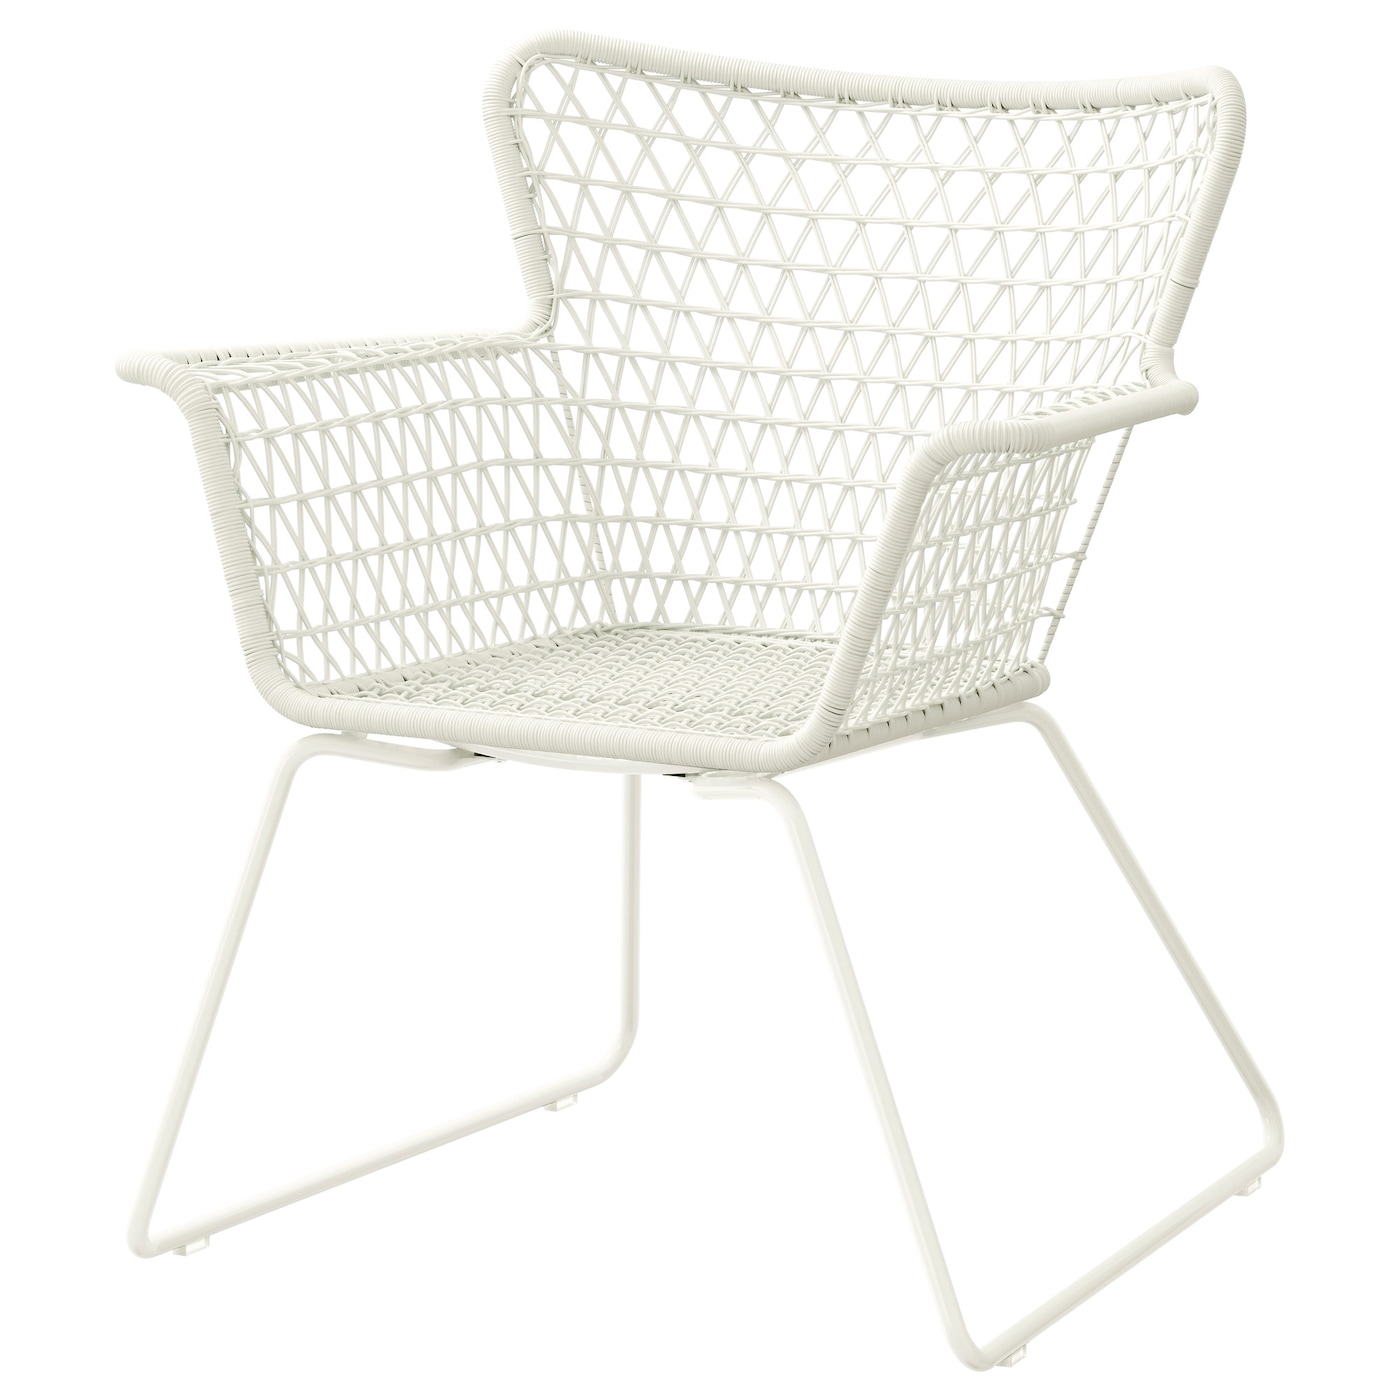 H gsten chair with armrests outdoor white ikea for Ikea exterior